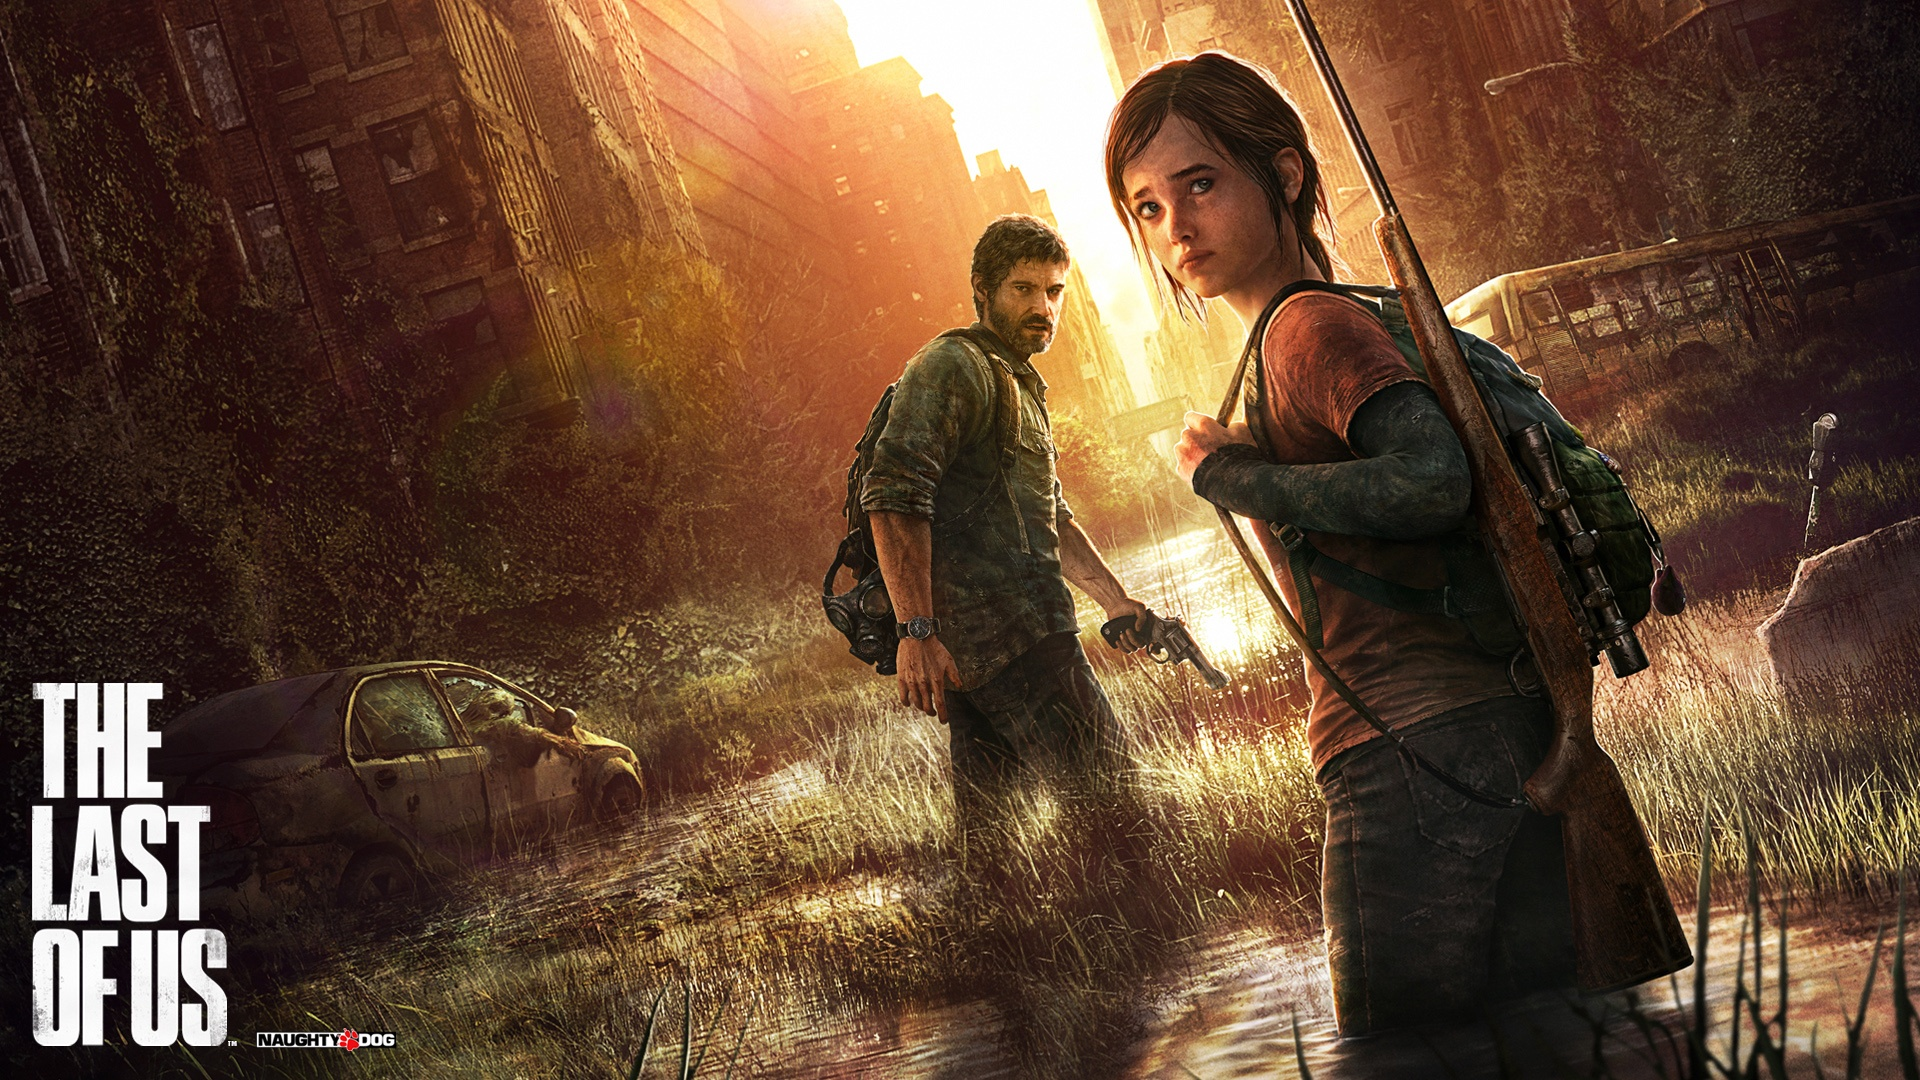 the-last-of-us-video-game-wallpaper-9